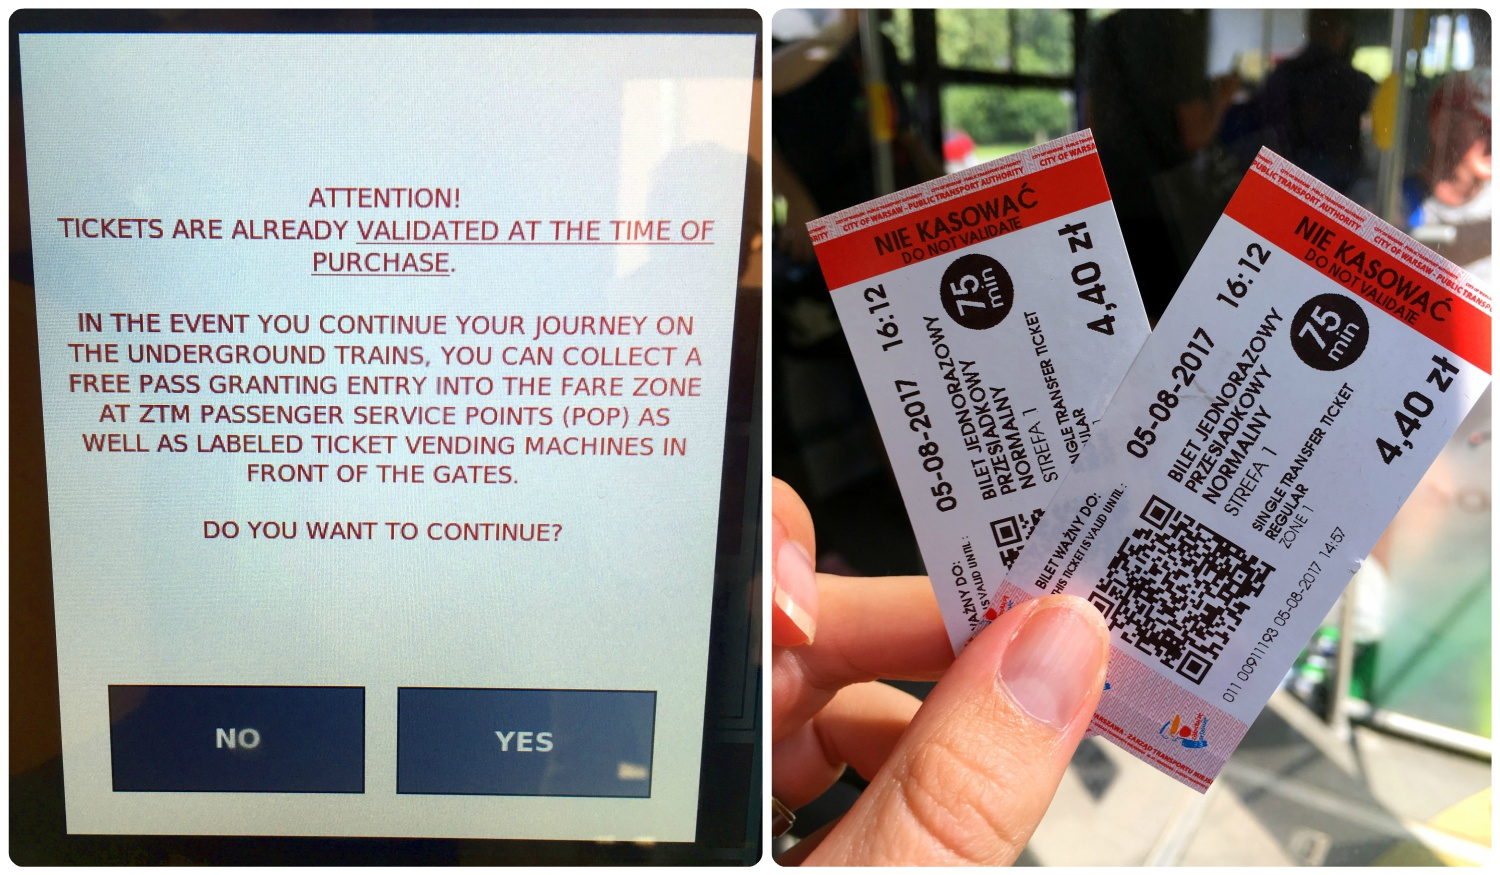 """Tickets bought on the bus are already validated. Before finalizing the purchase, a warning is shown on the ticket machine screen. Once the tickets have been printed, you can see the red stripe that says """"Do Not Validate""""."""